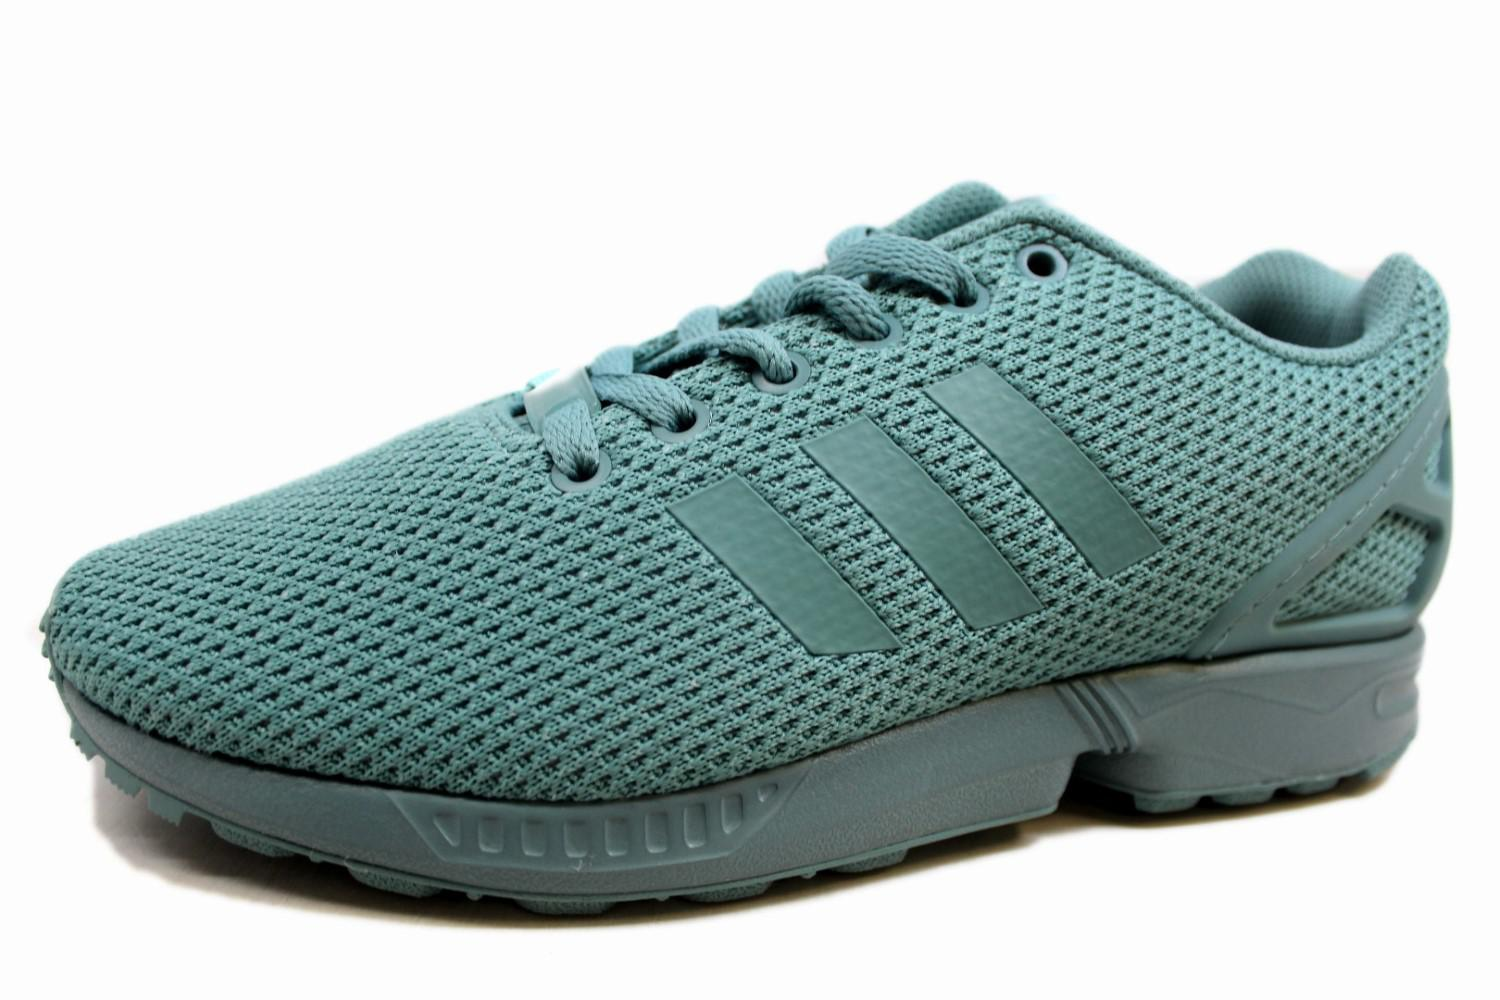 brand new 8e99d a7889 Lyst - Adidas Zx Flux Shoe Rubber Grey in Gray